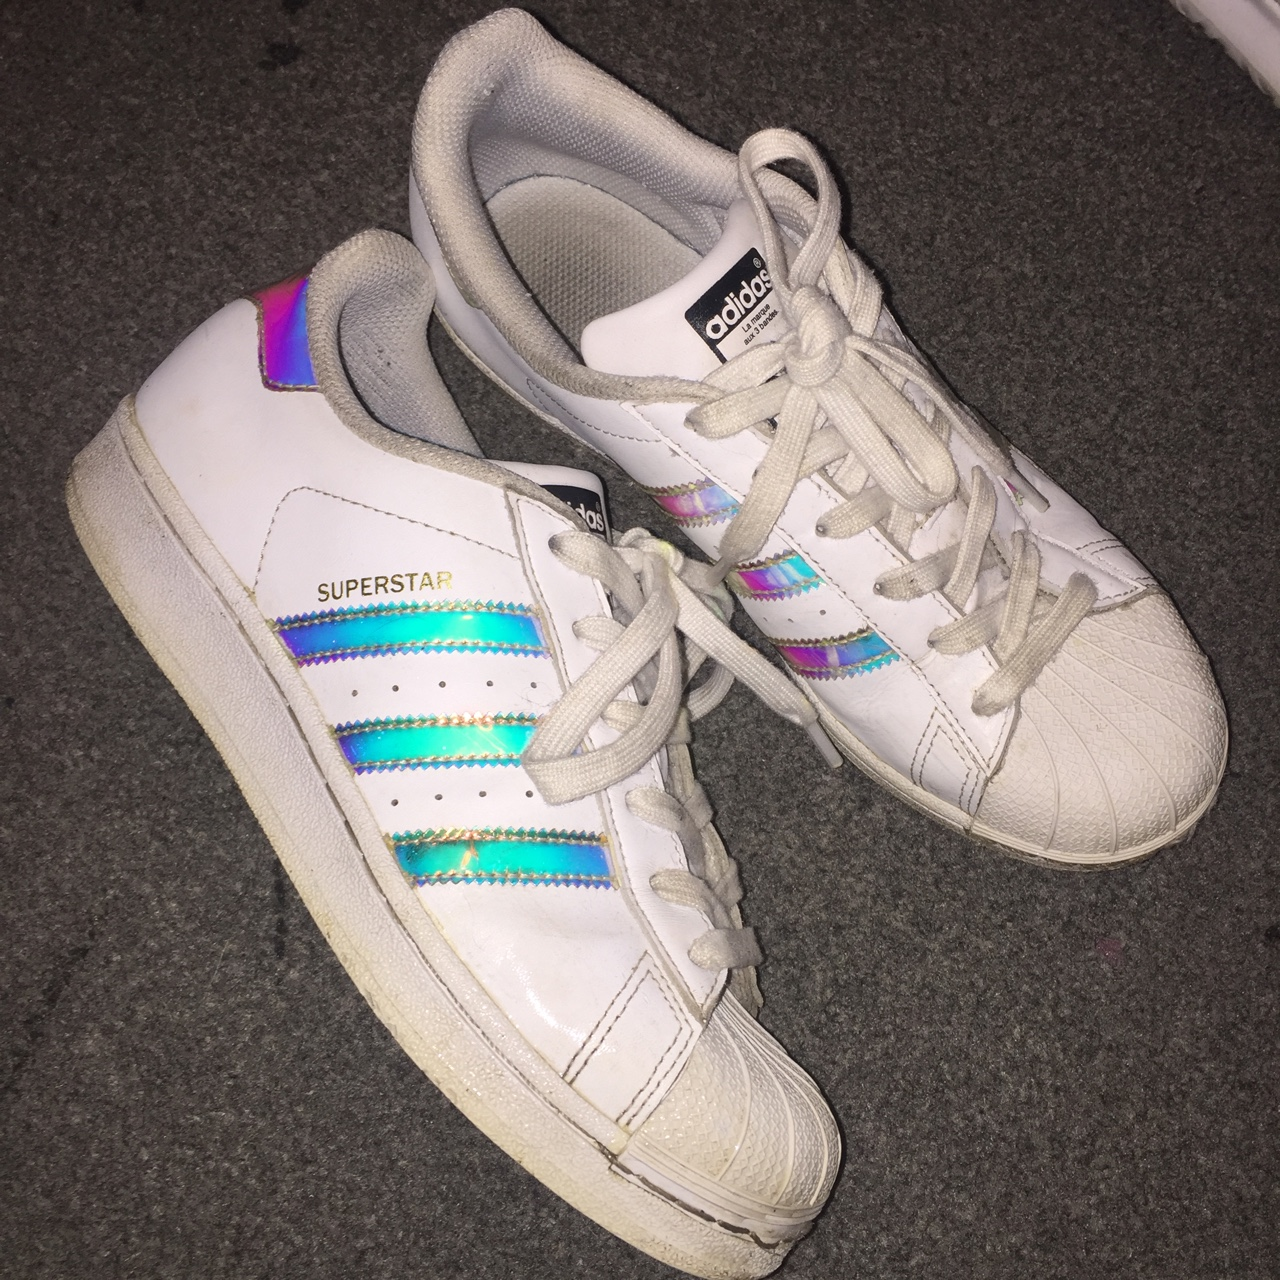 best sneakers 197c1 4c0dd Adidas superstars, white, rainbow stripes, worn a... - Depop